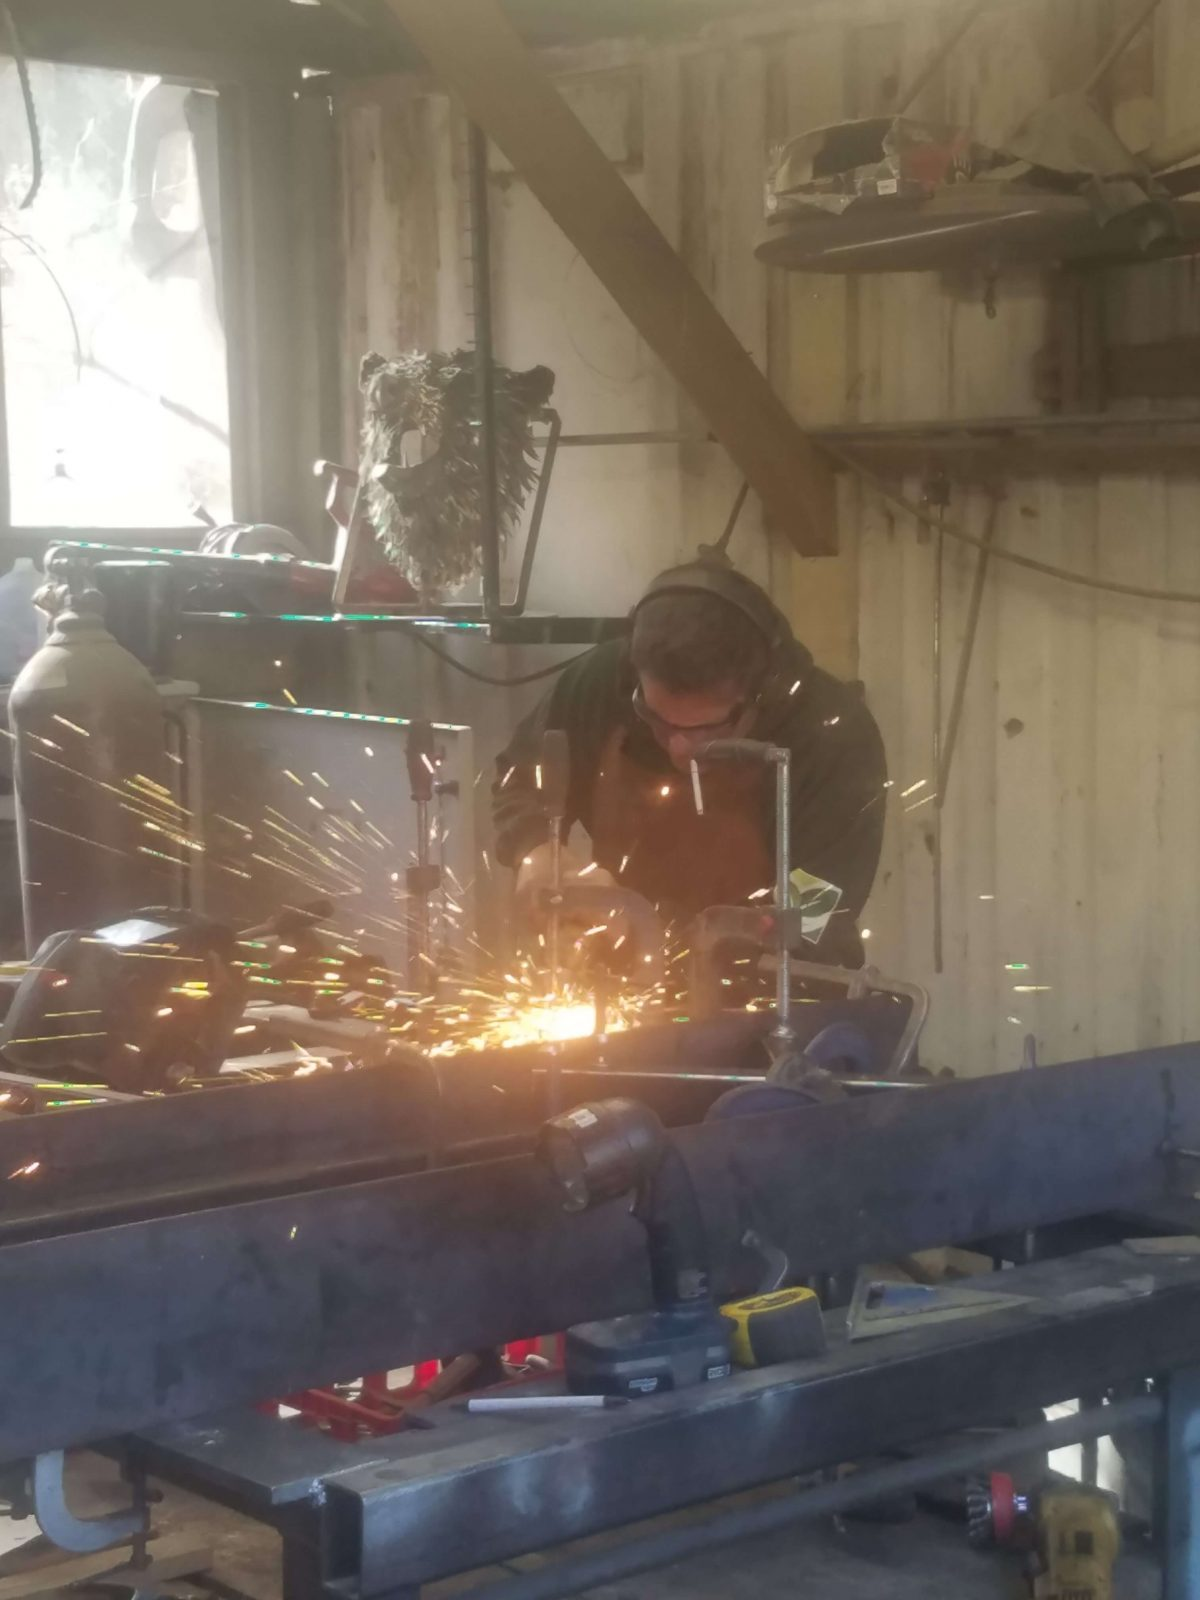 Welding at metal shop